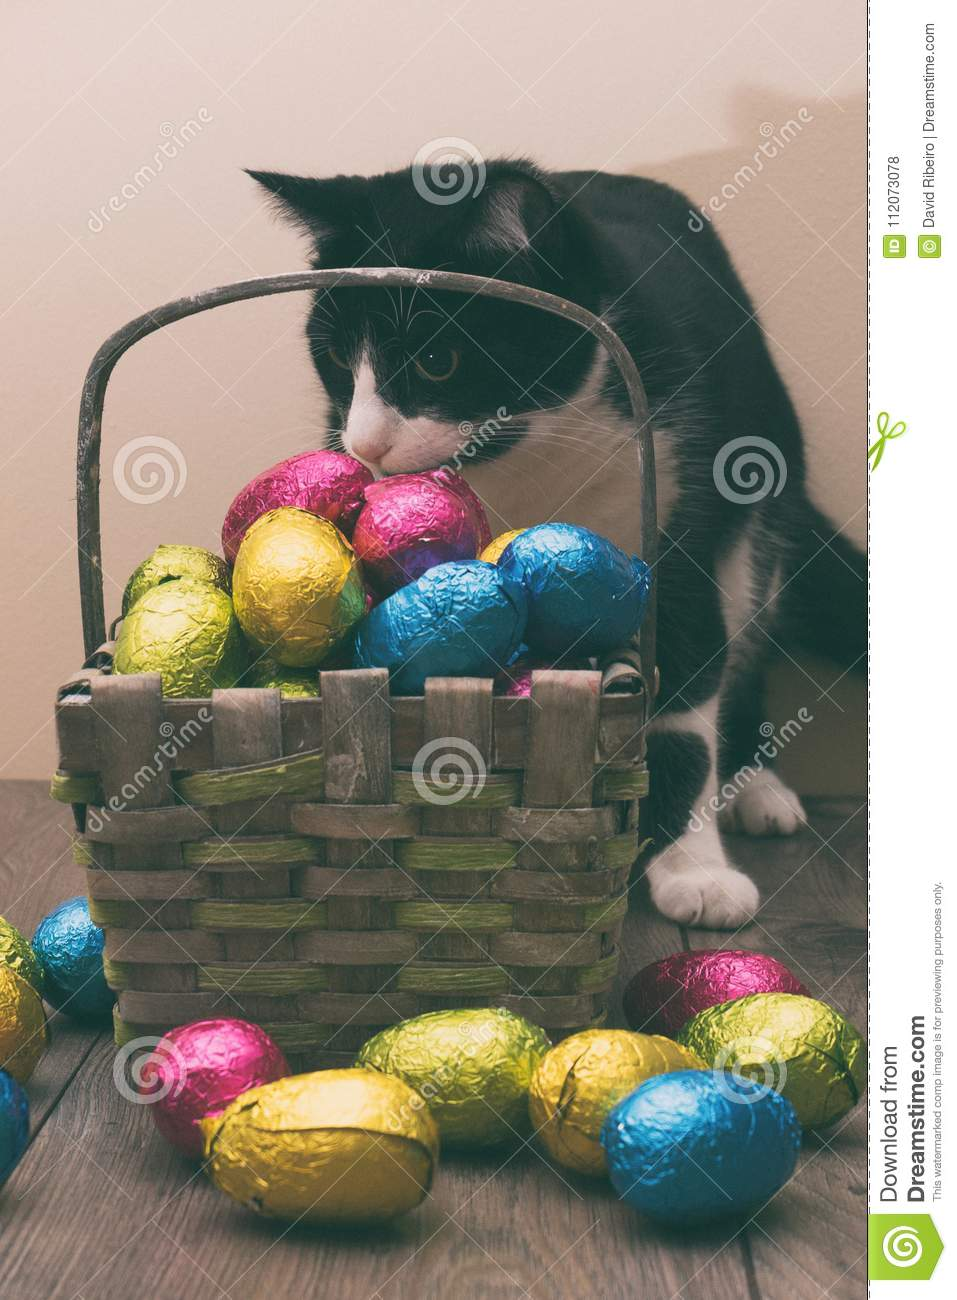 Cat behind a straw basket filled with Easter chocolate eggs wrapped in colorful tinfoil